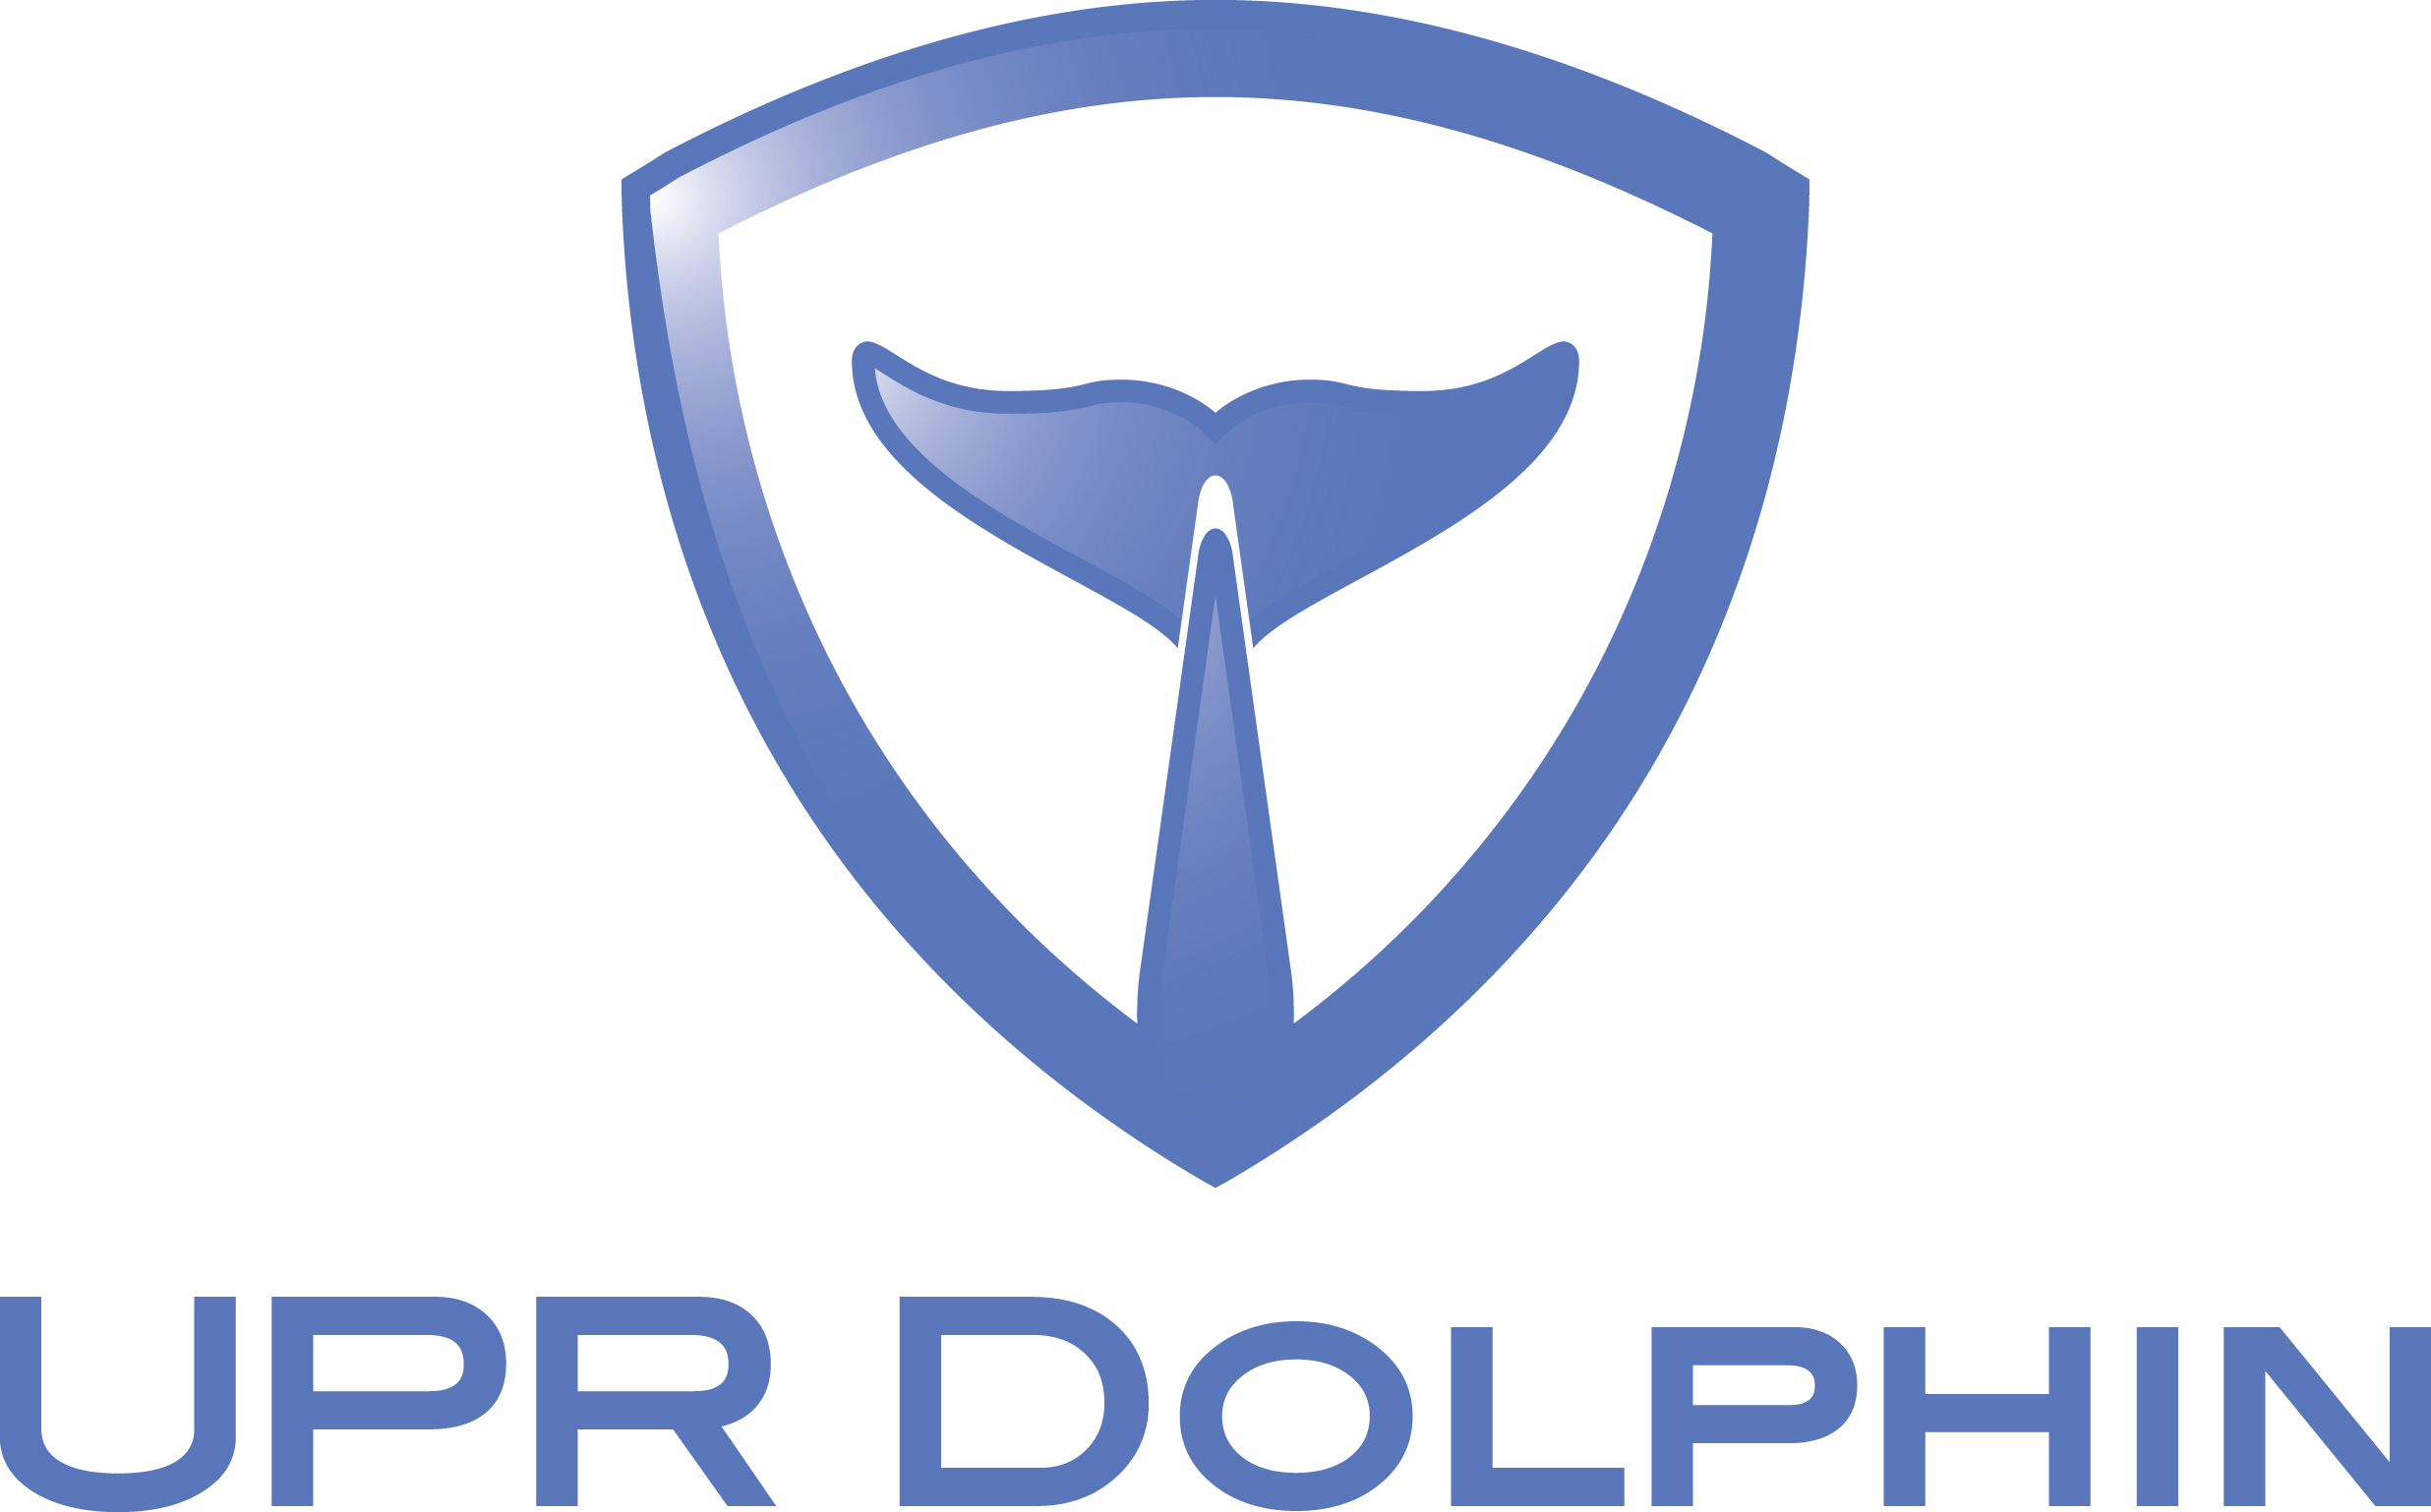 UPR DOLPHINロゴ